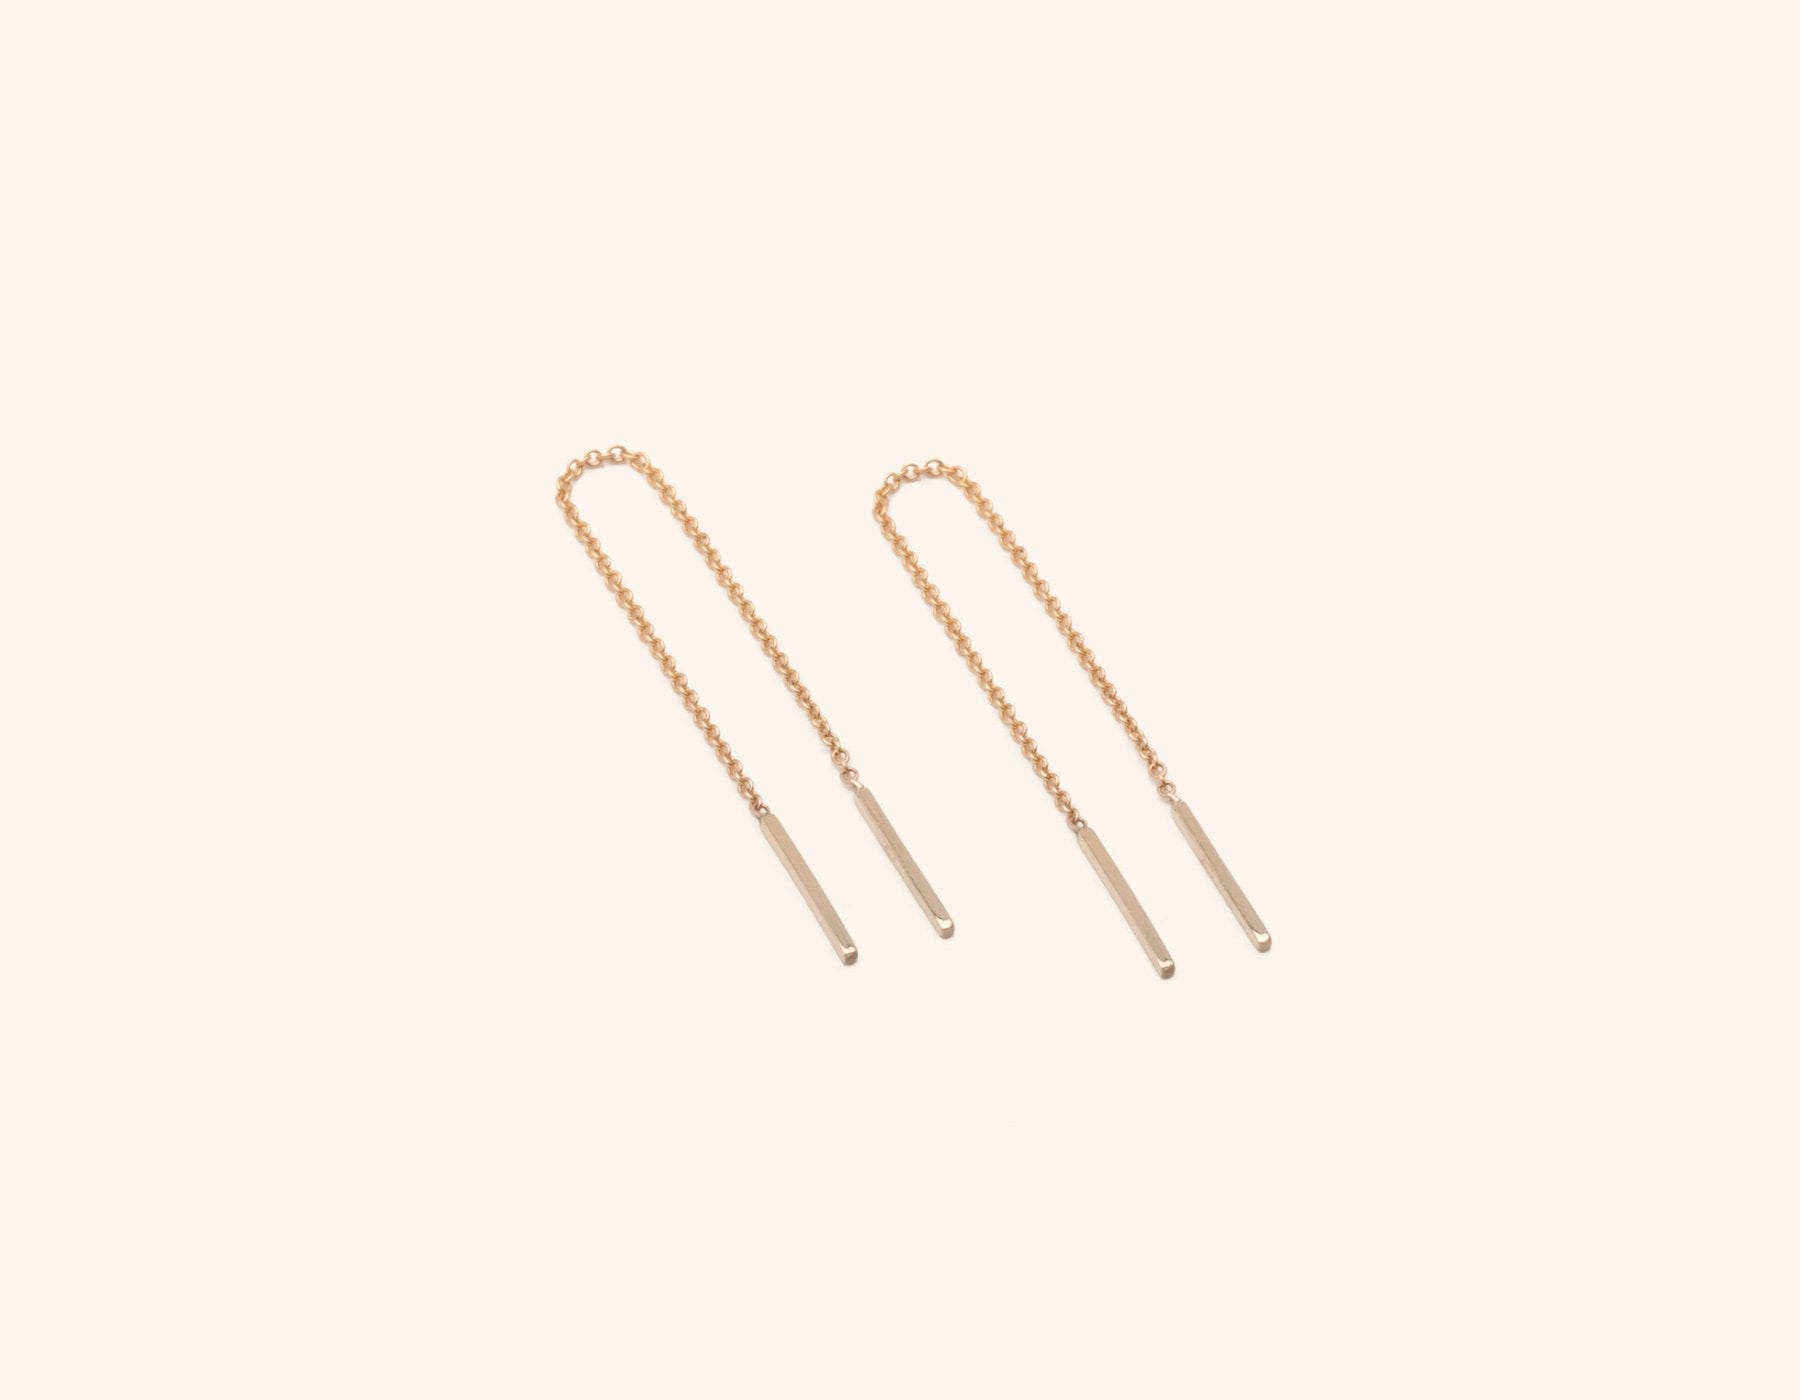 Vrai & Oro dainty minimalist 14K Solid Gold Line Threader Chain Earrings, 14K Rose Gold